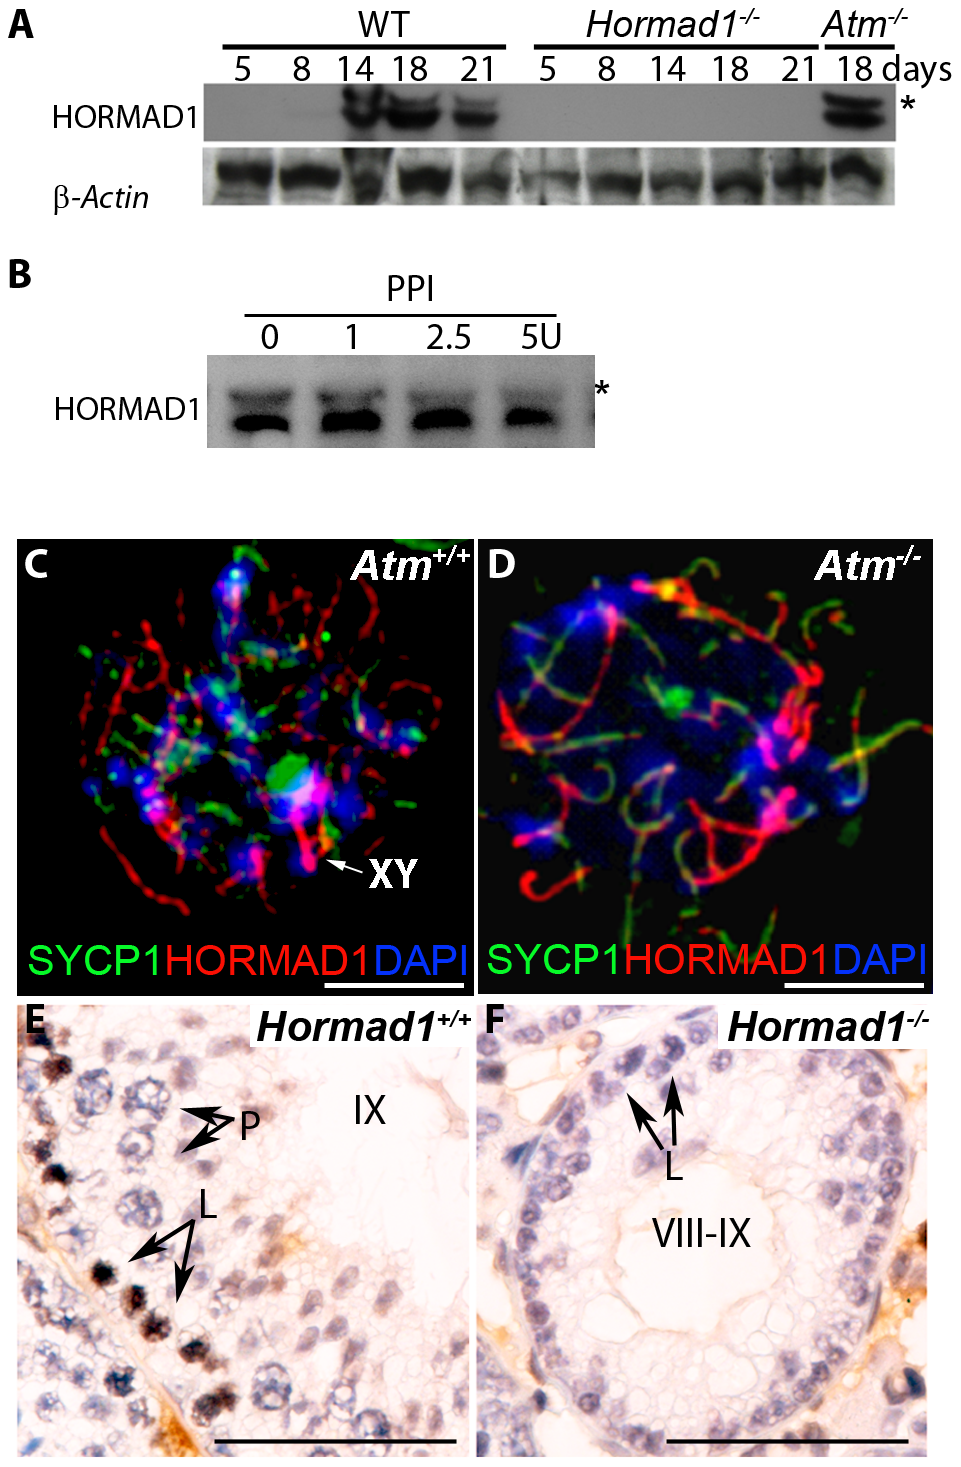 HORMAD1 phosphorylation is unaffected by <i>Atm</i> deficiency while <i>Hormad1</i> deficiency disrupts ATM autophosphorylation.